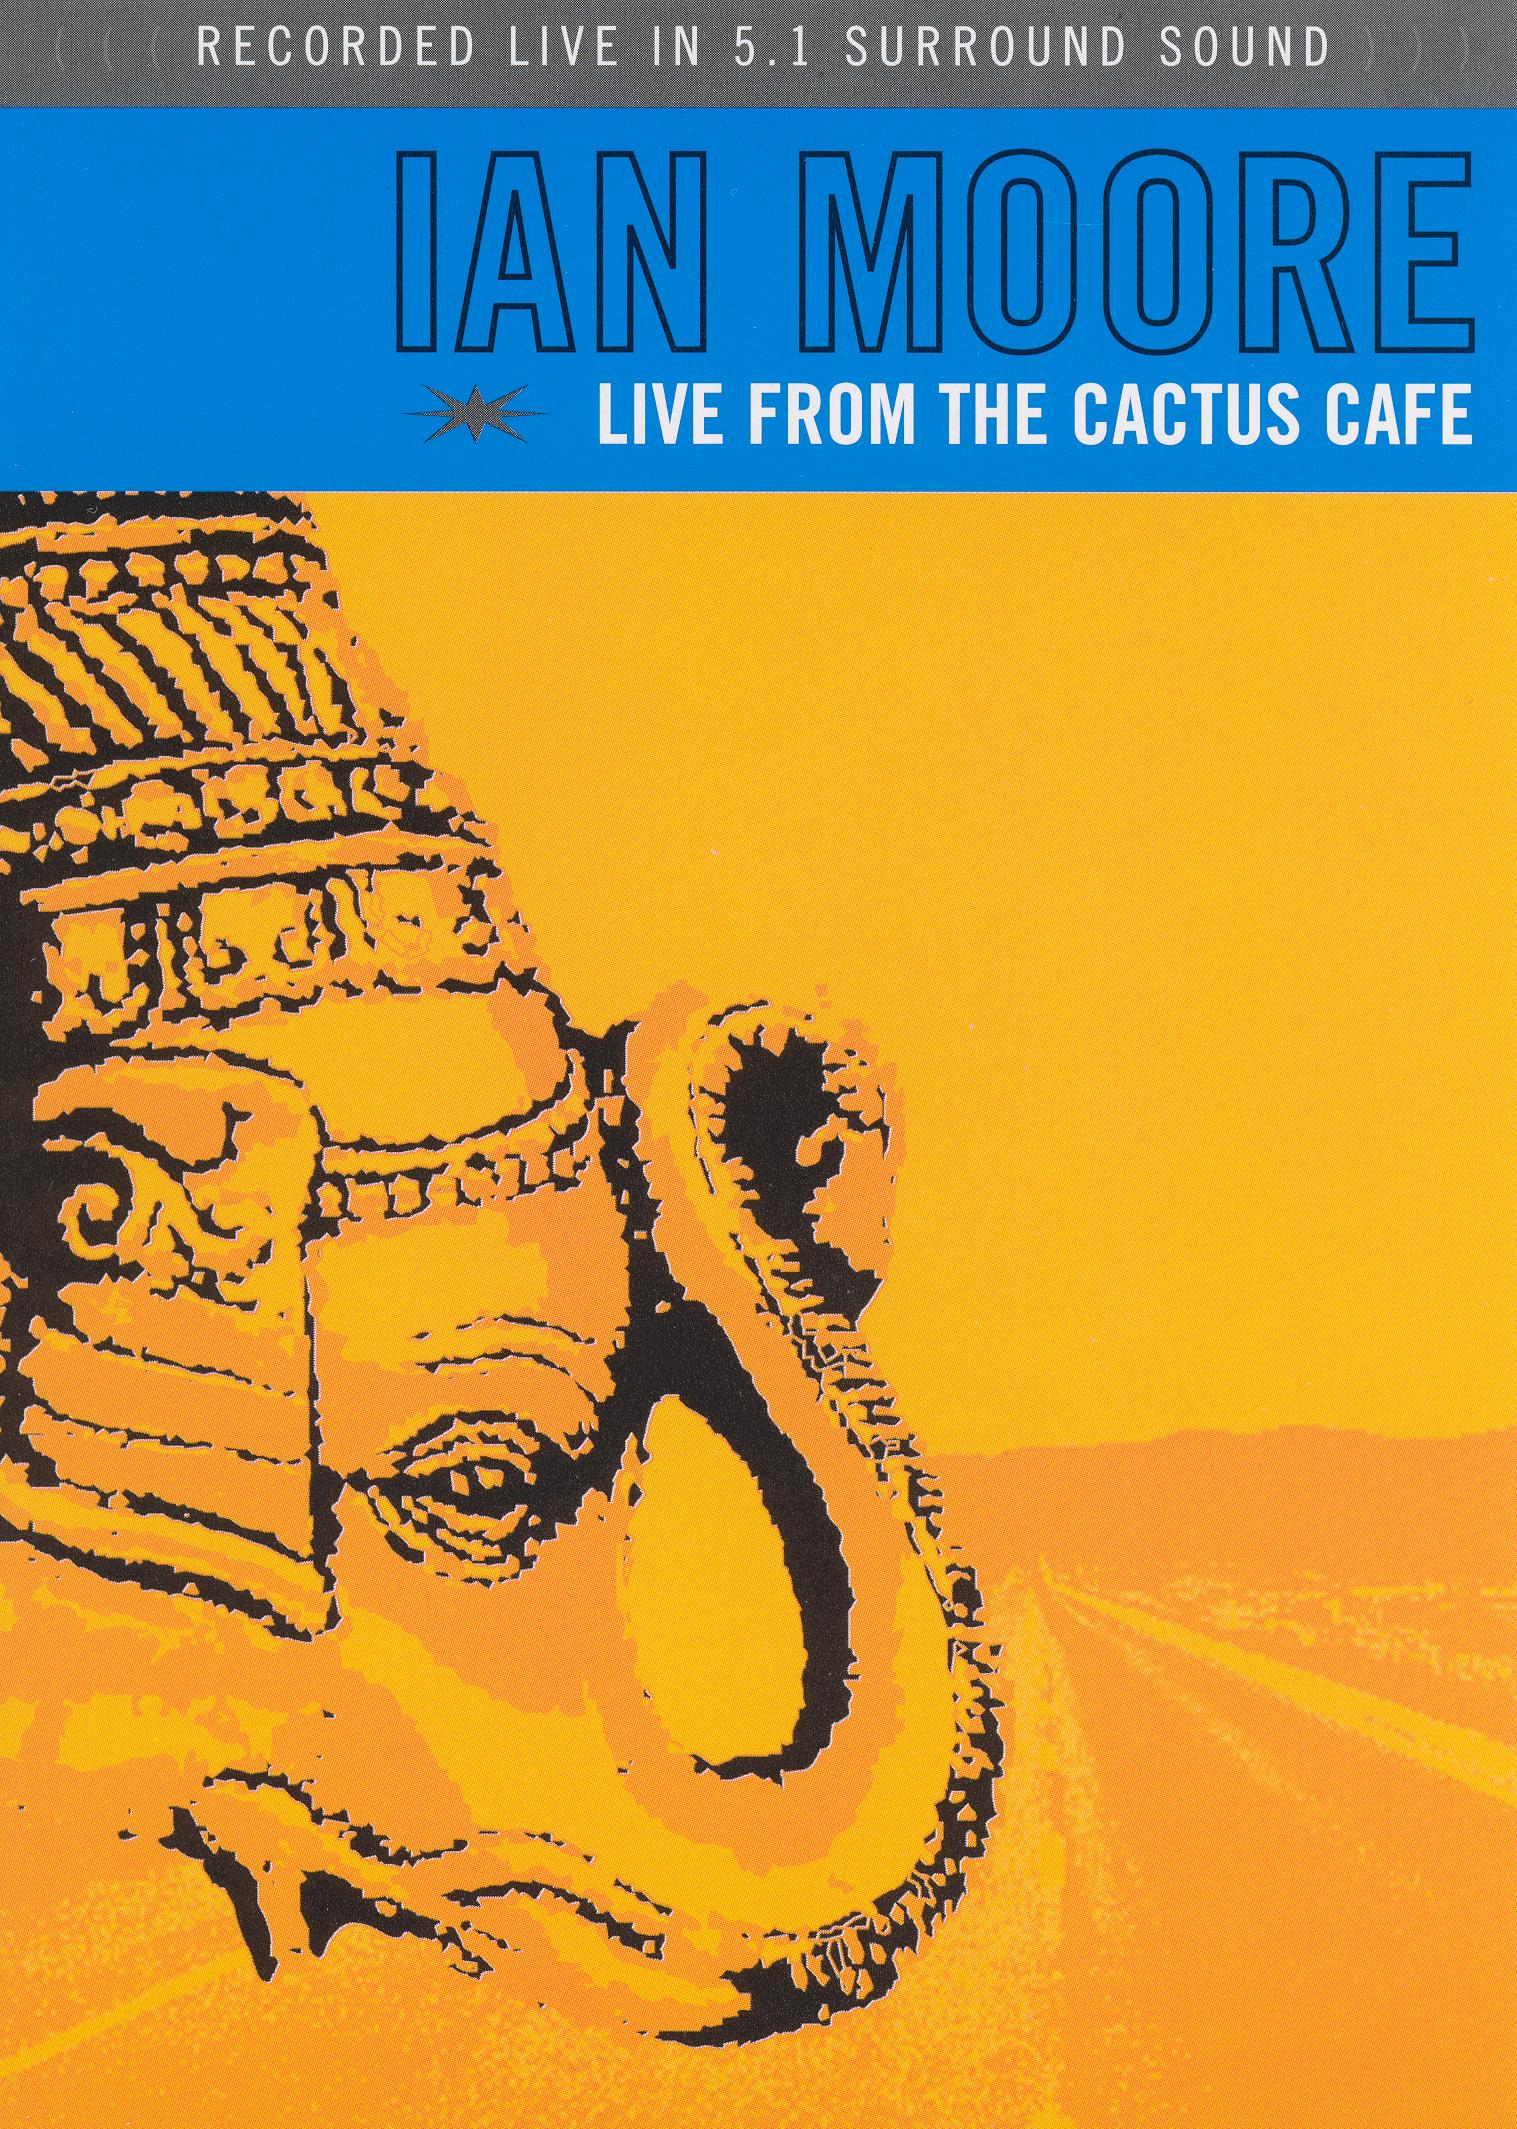 Ian Moore: Live From the Cactus Cafe